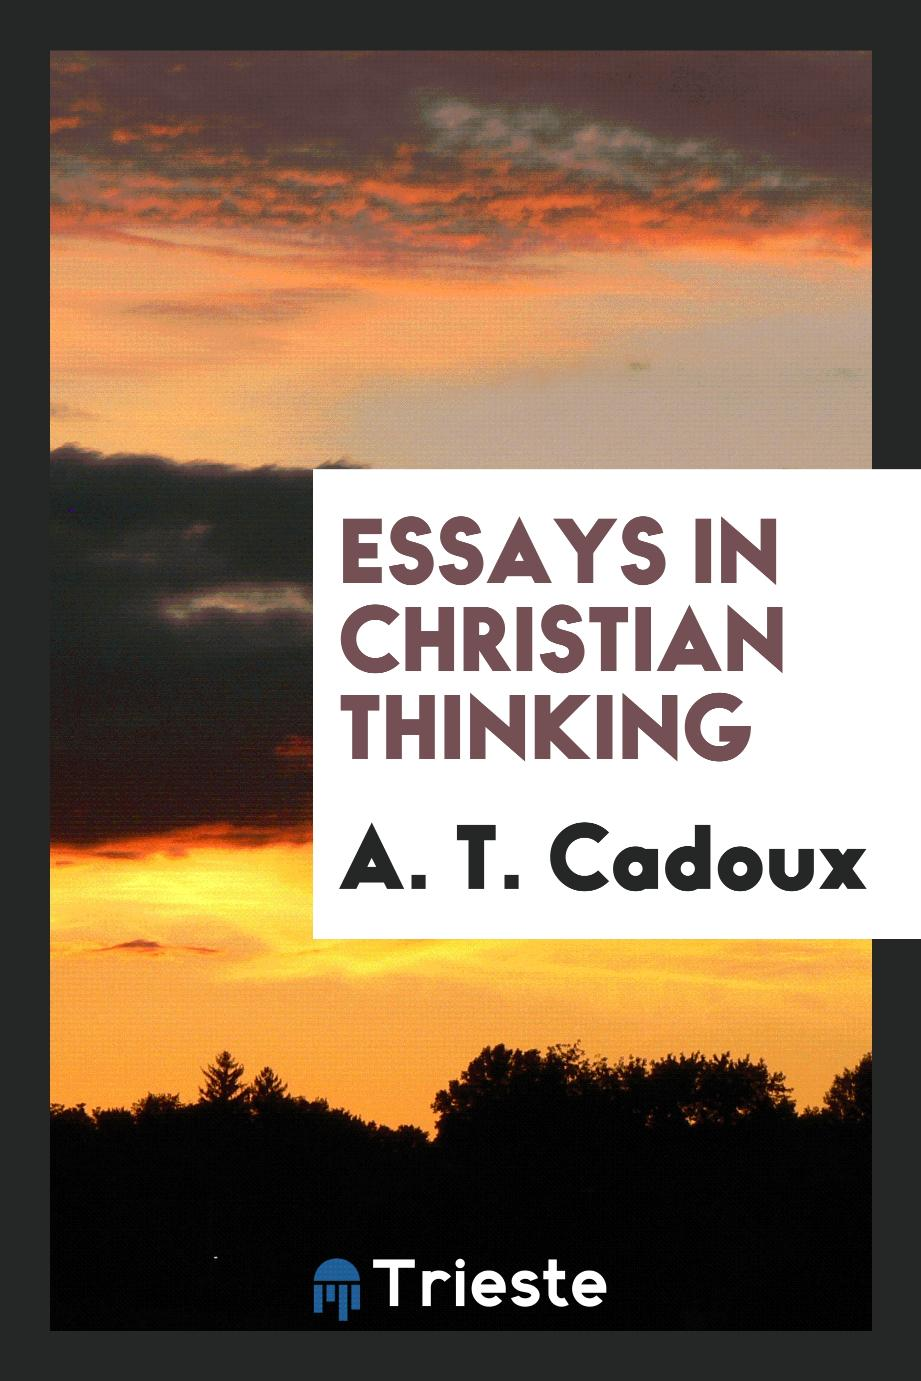 A. T. Cadoux - Essays in Christian thinking